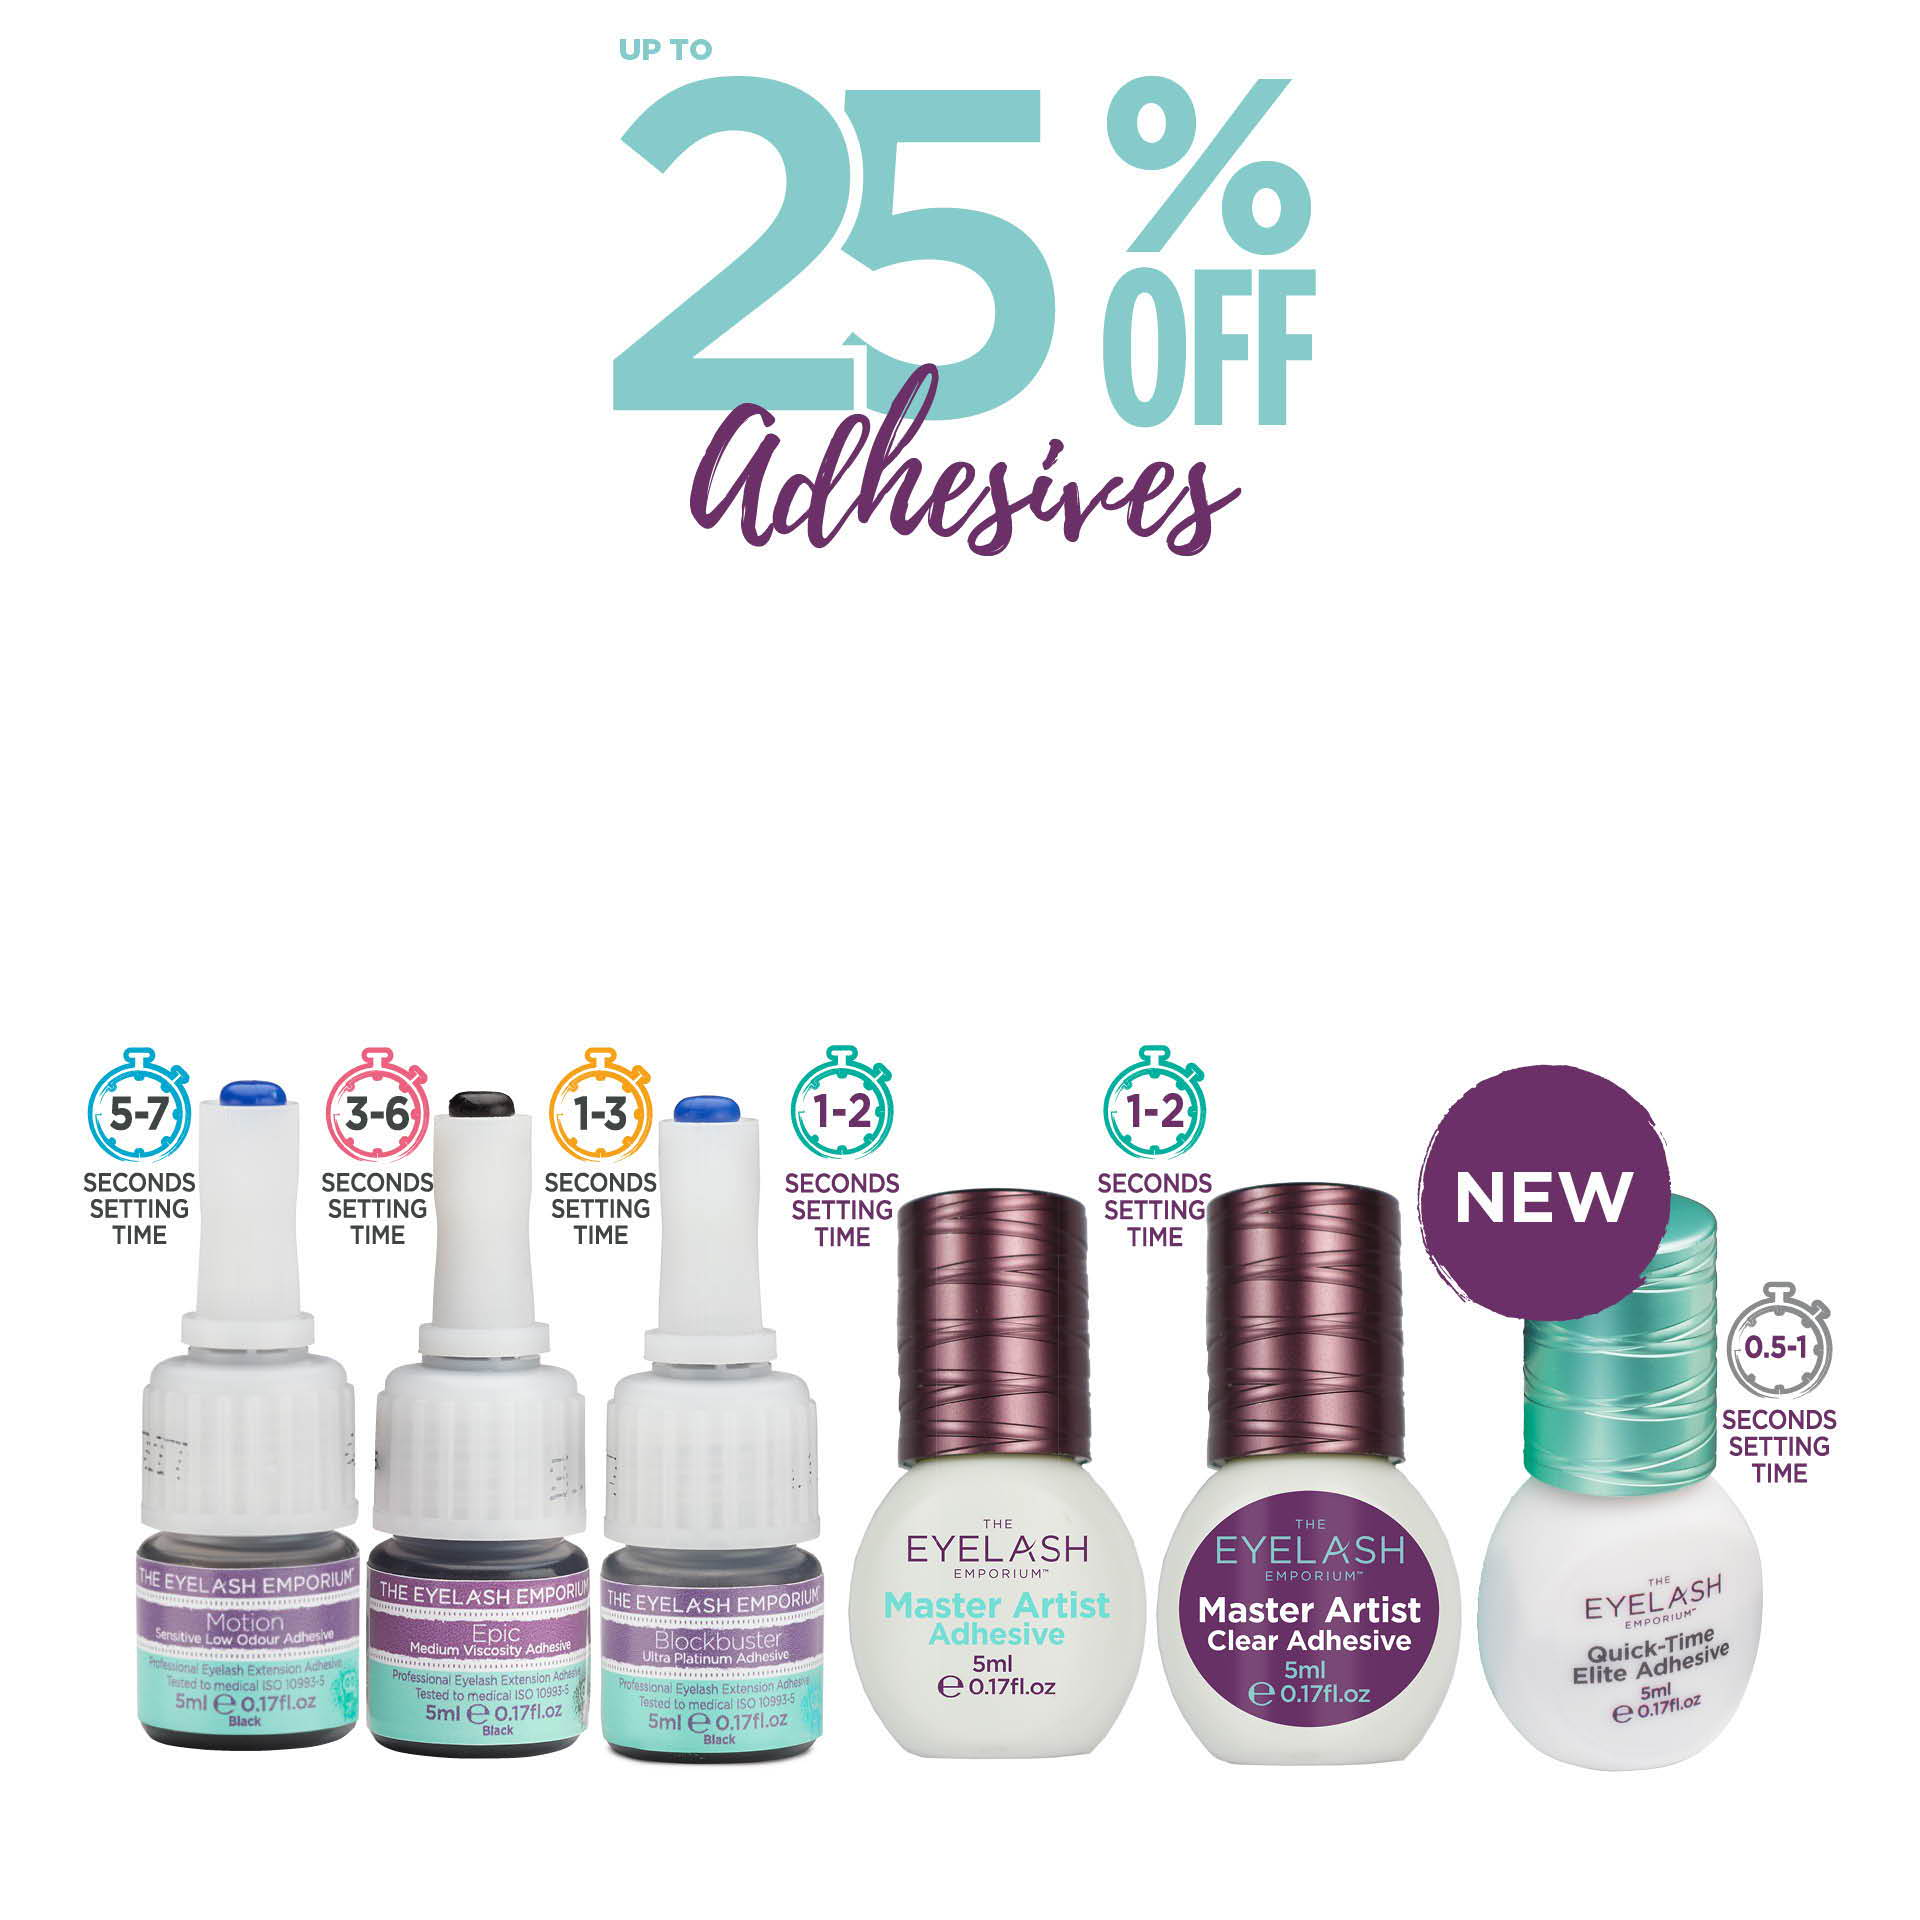 Up to 25% off adhesives